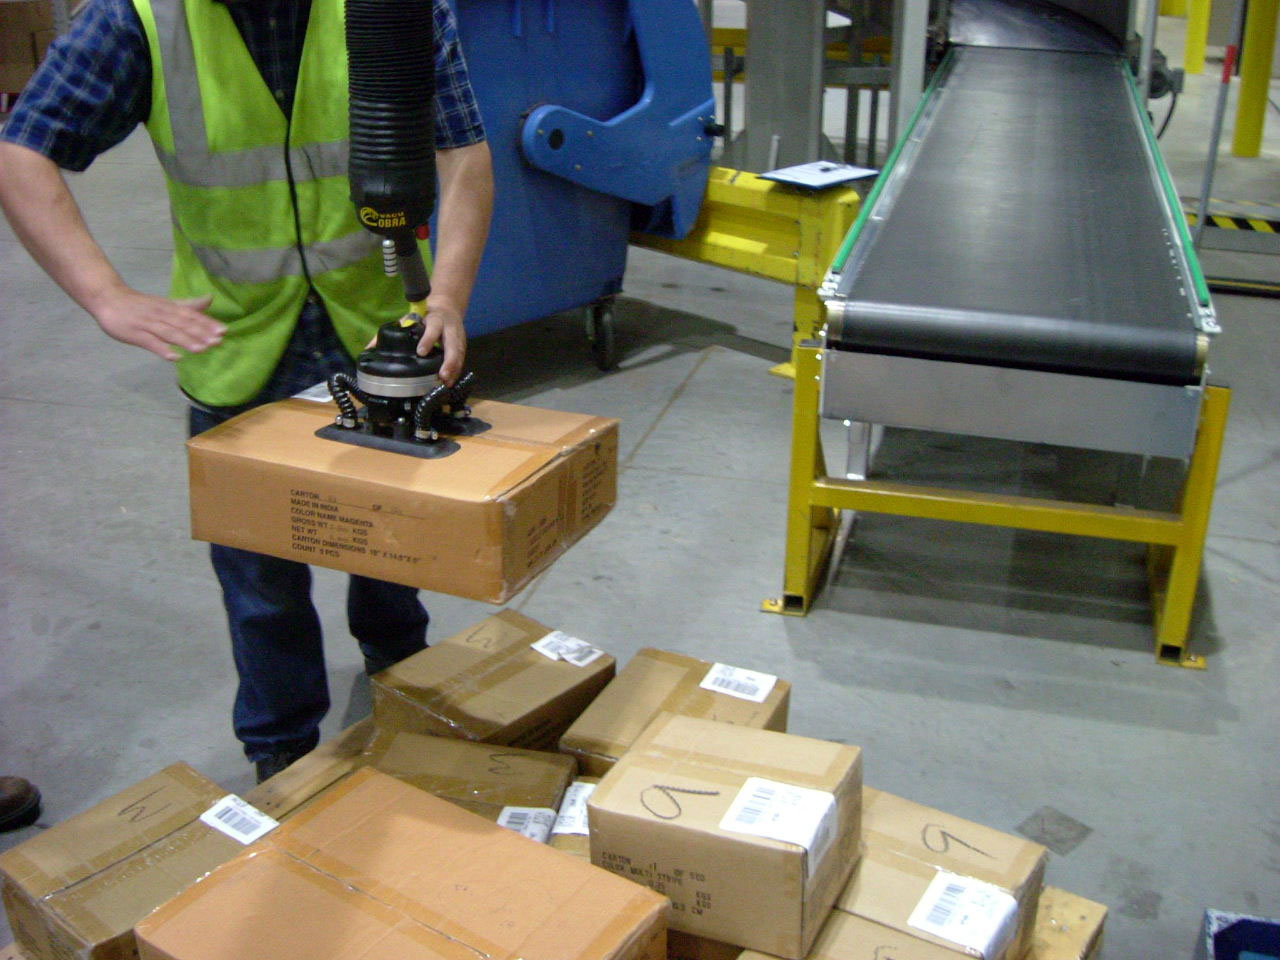 Logistics from conveyor to pallet